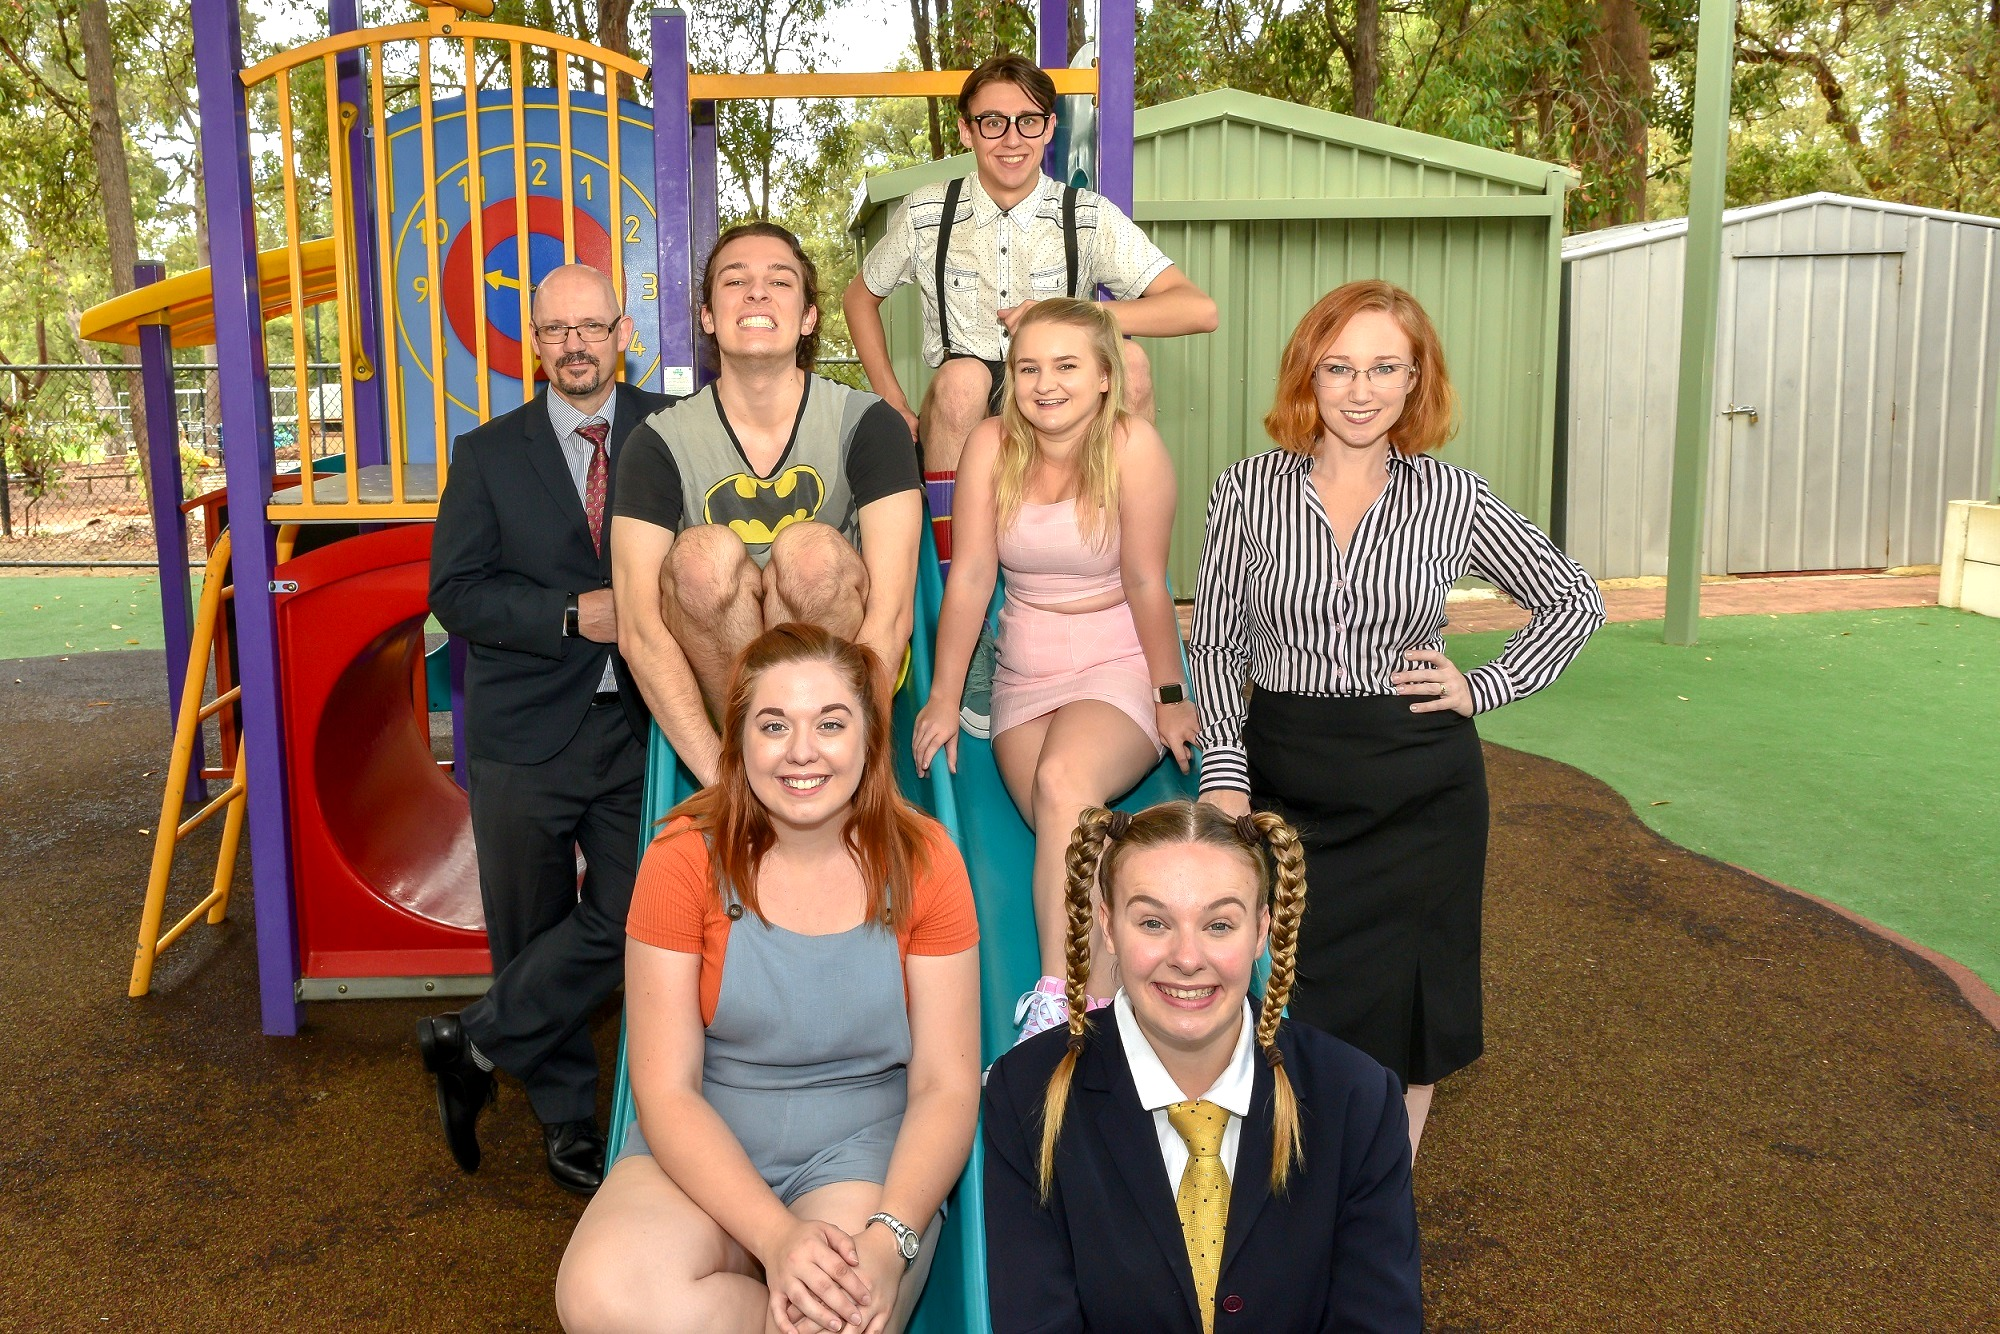 Rory Cornelius, left, Max Gipson, Jarvys McQueen-Mason, Megan McDonald, Nicole George, at back, and Dylan Dorotich and Breanna Redhead, at front, are appearing in The 25th Annual Putnam County Spelling Bee .